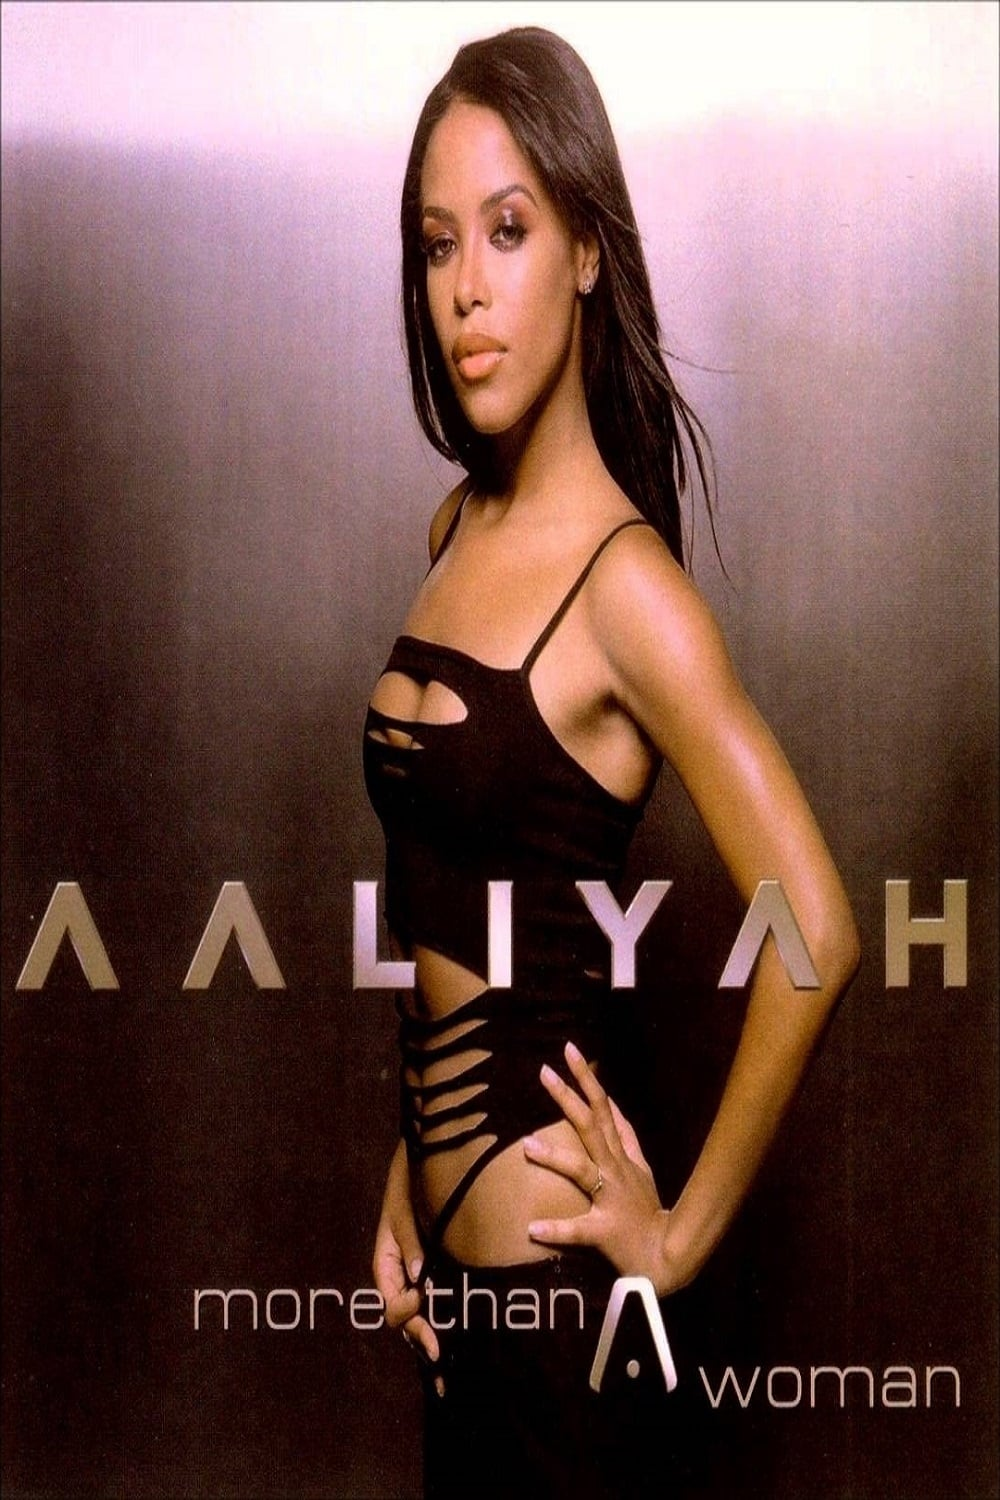 Aaliyah more than a woman single